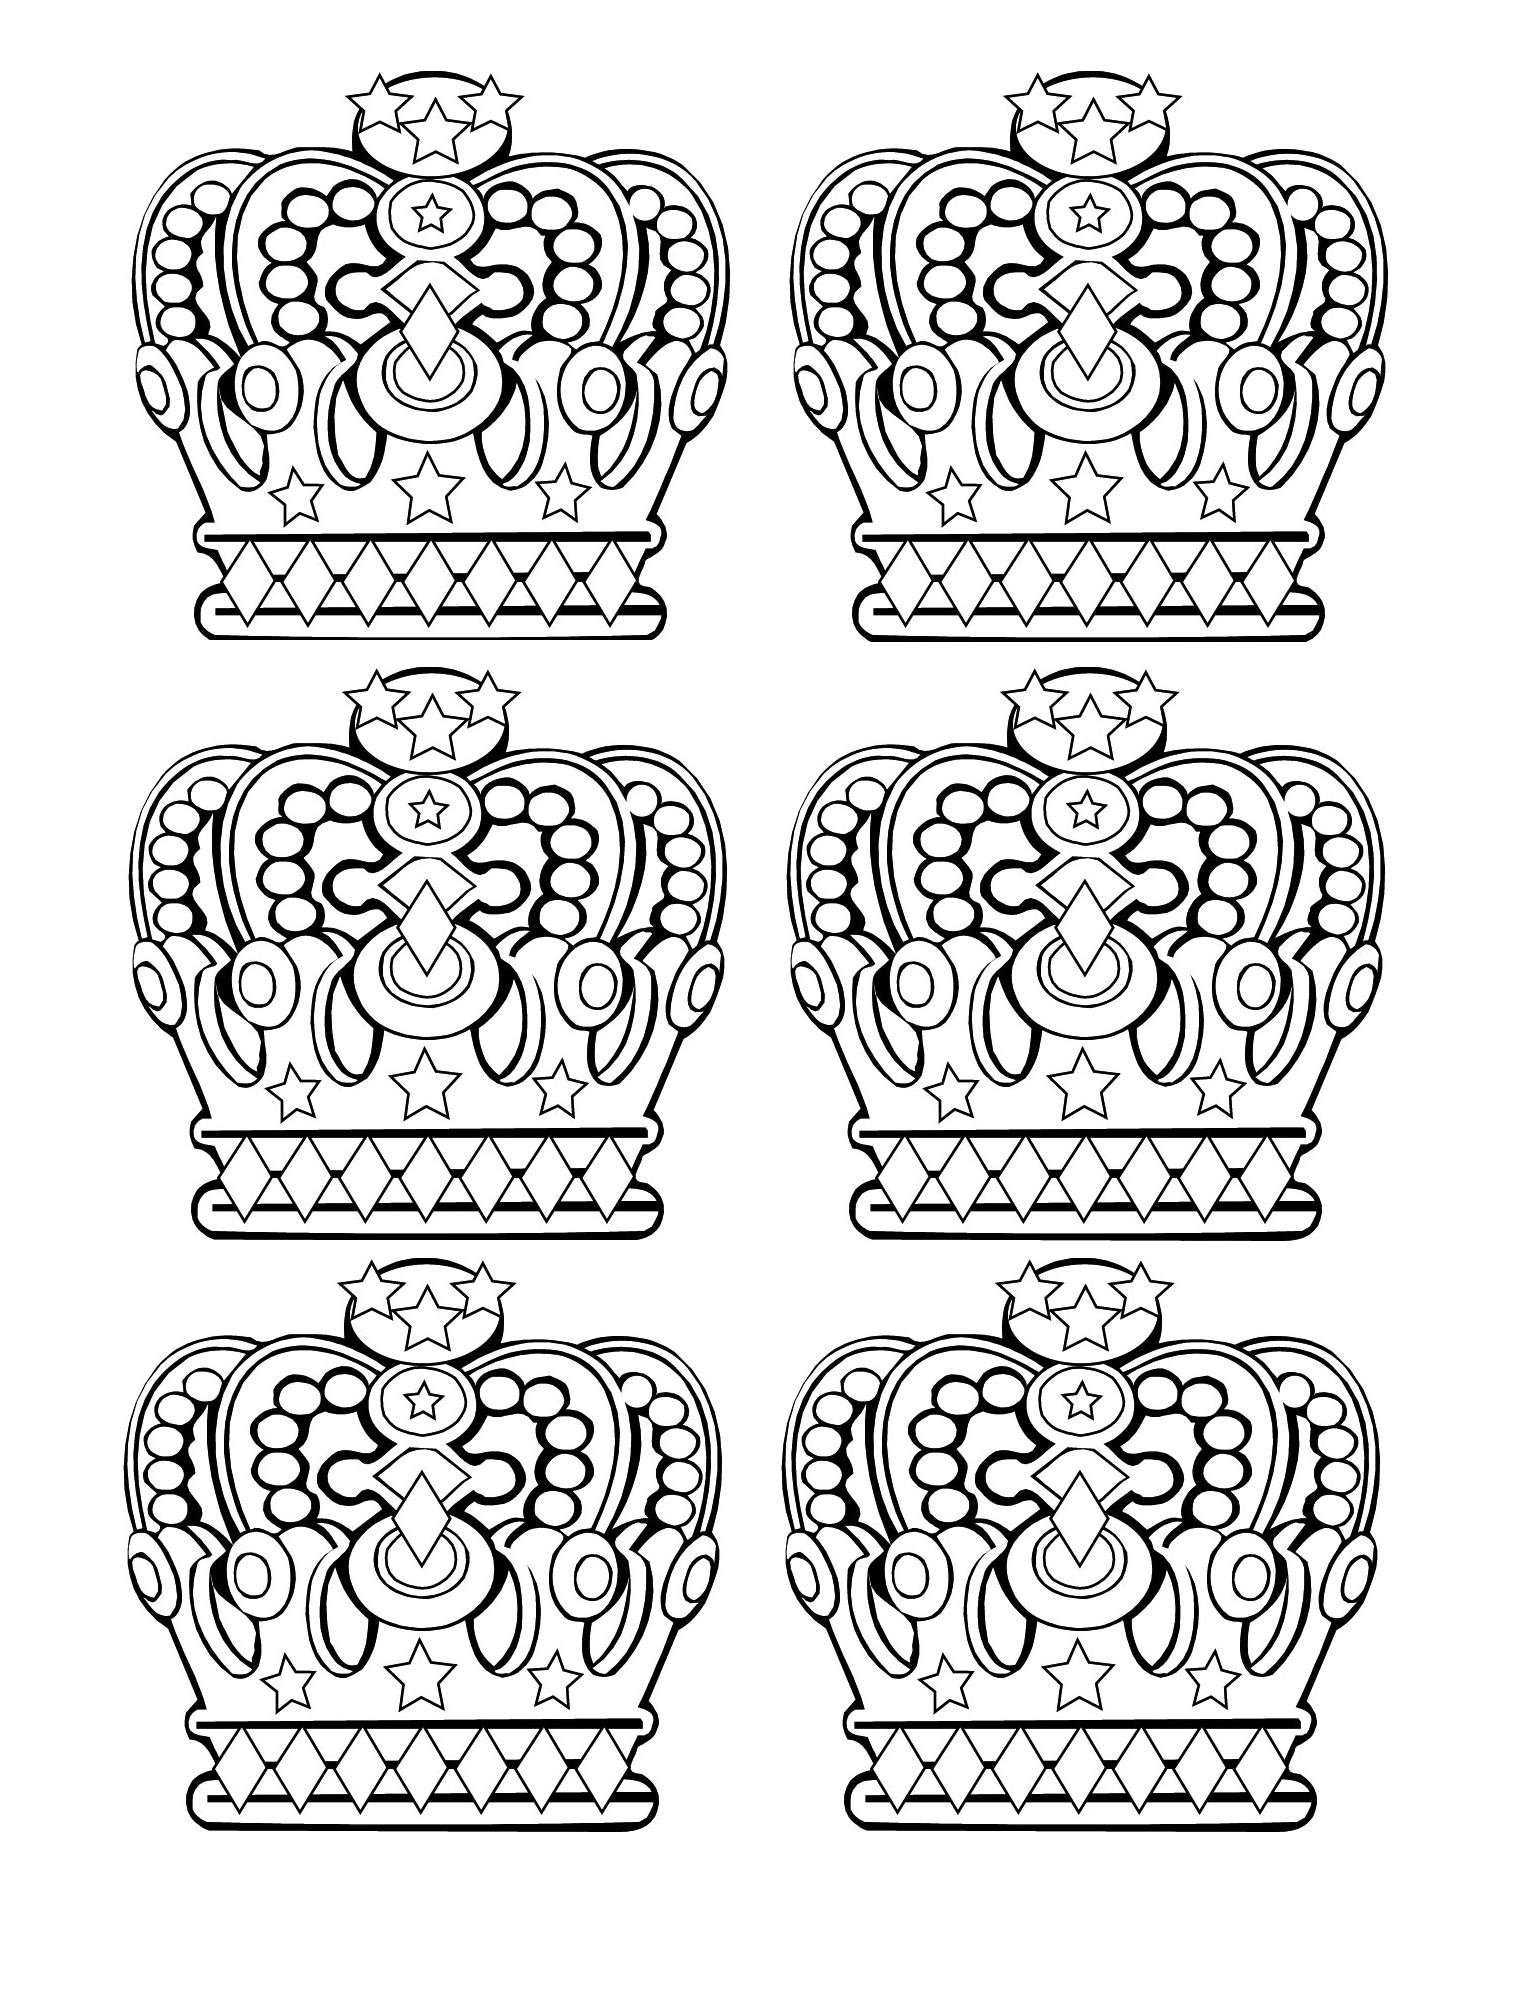 Royal crowns (6 patterns)